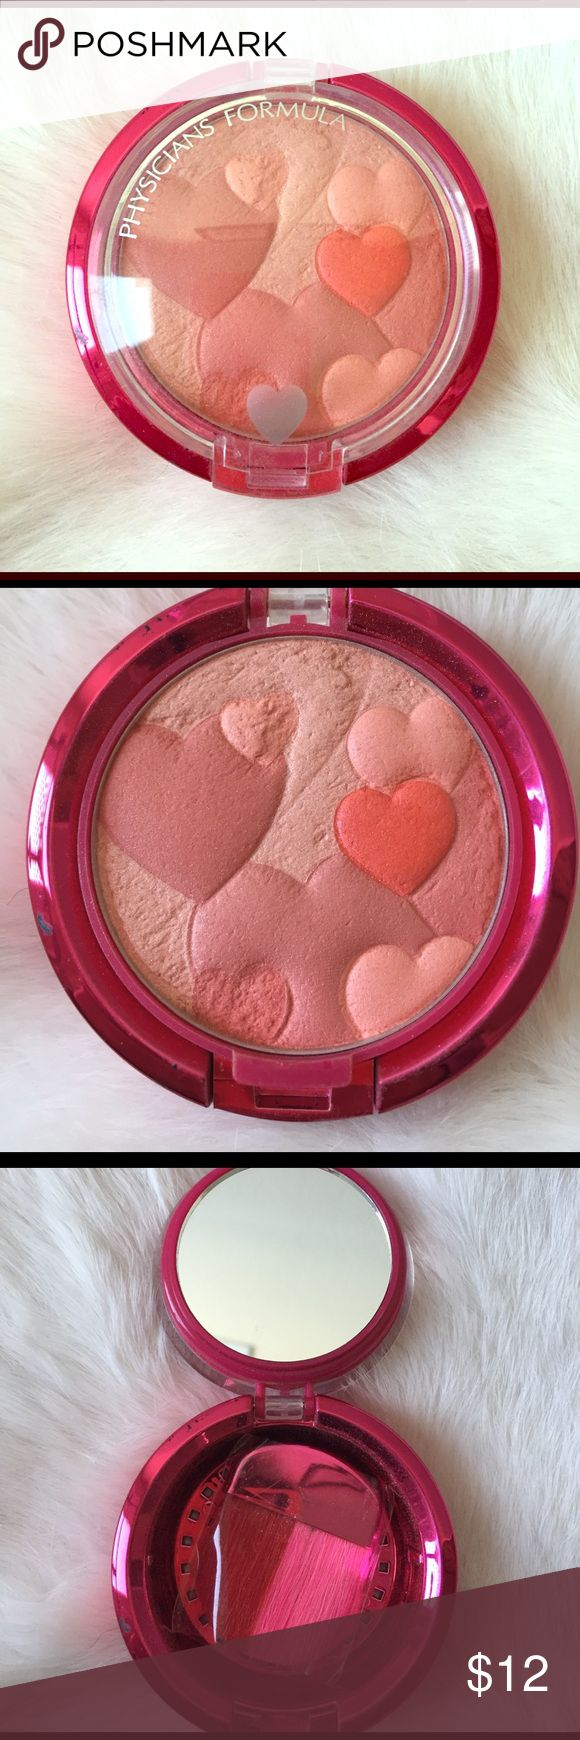 Physicians Formula blush Physician's Formula - Happy Booster Glow & Mood Boosting Blush. Shade is Warm. Never used, includes new brush in plastic packaging. Please look closely at pictures. 💕 Physicians Formula Makeup Blush